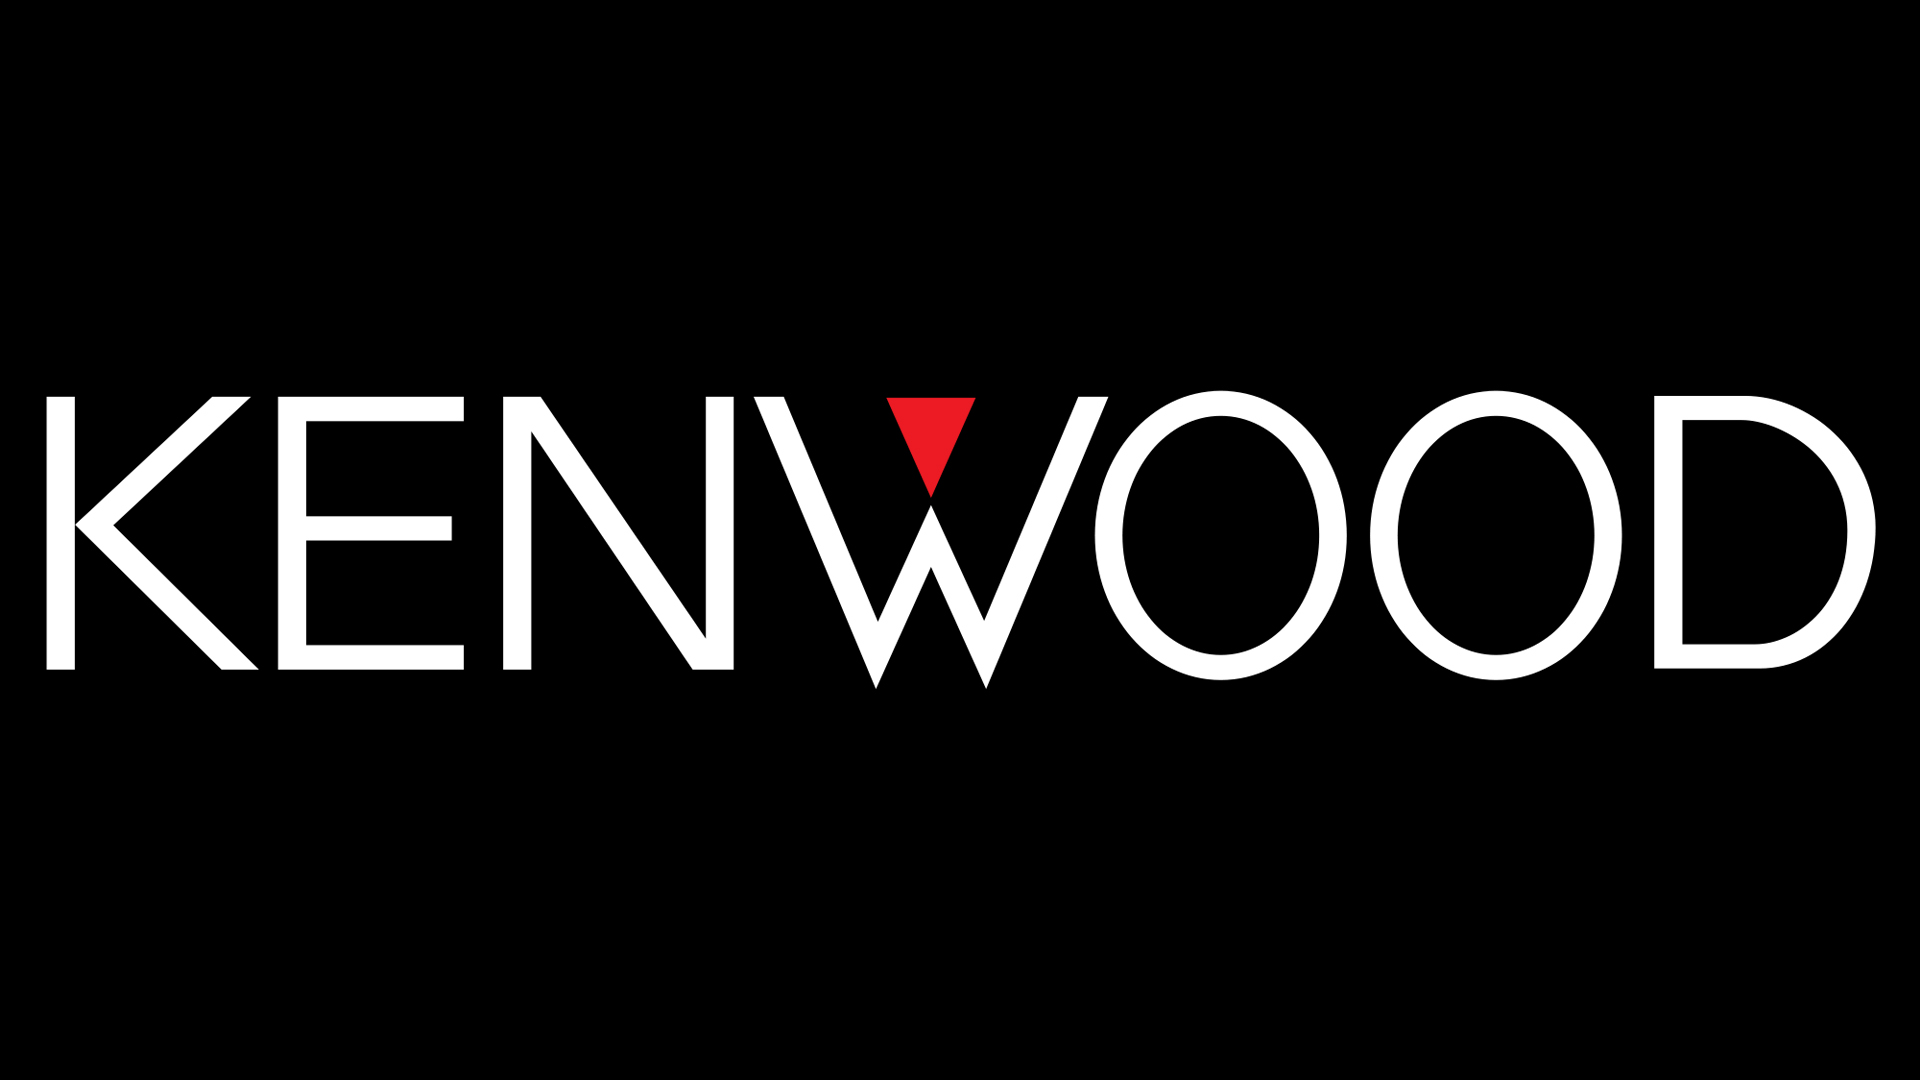 https://dealeroptions.com/wp-content/uploads/2019/02/KENWOOD-LOGO.jpg